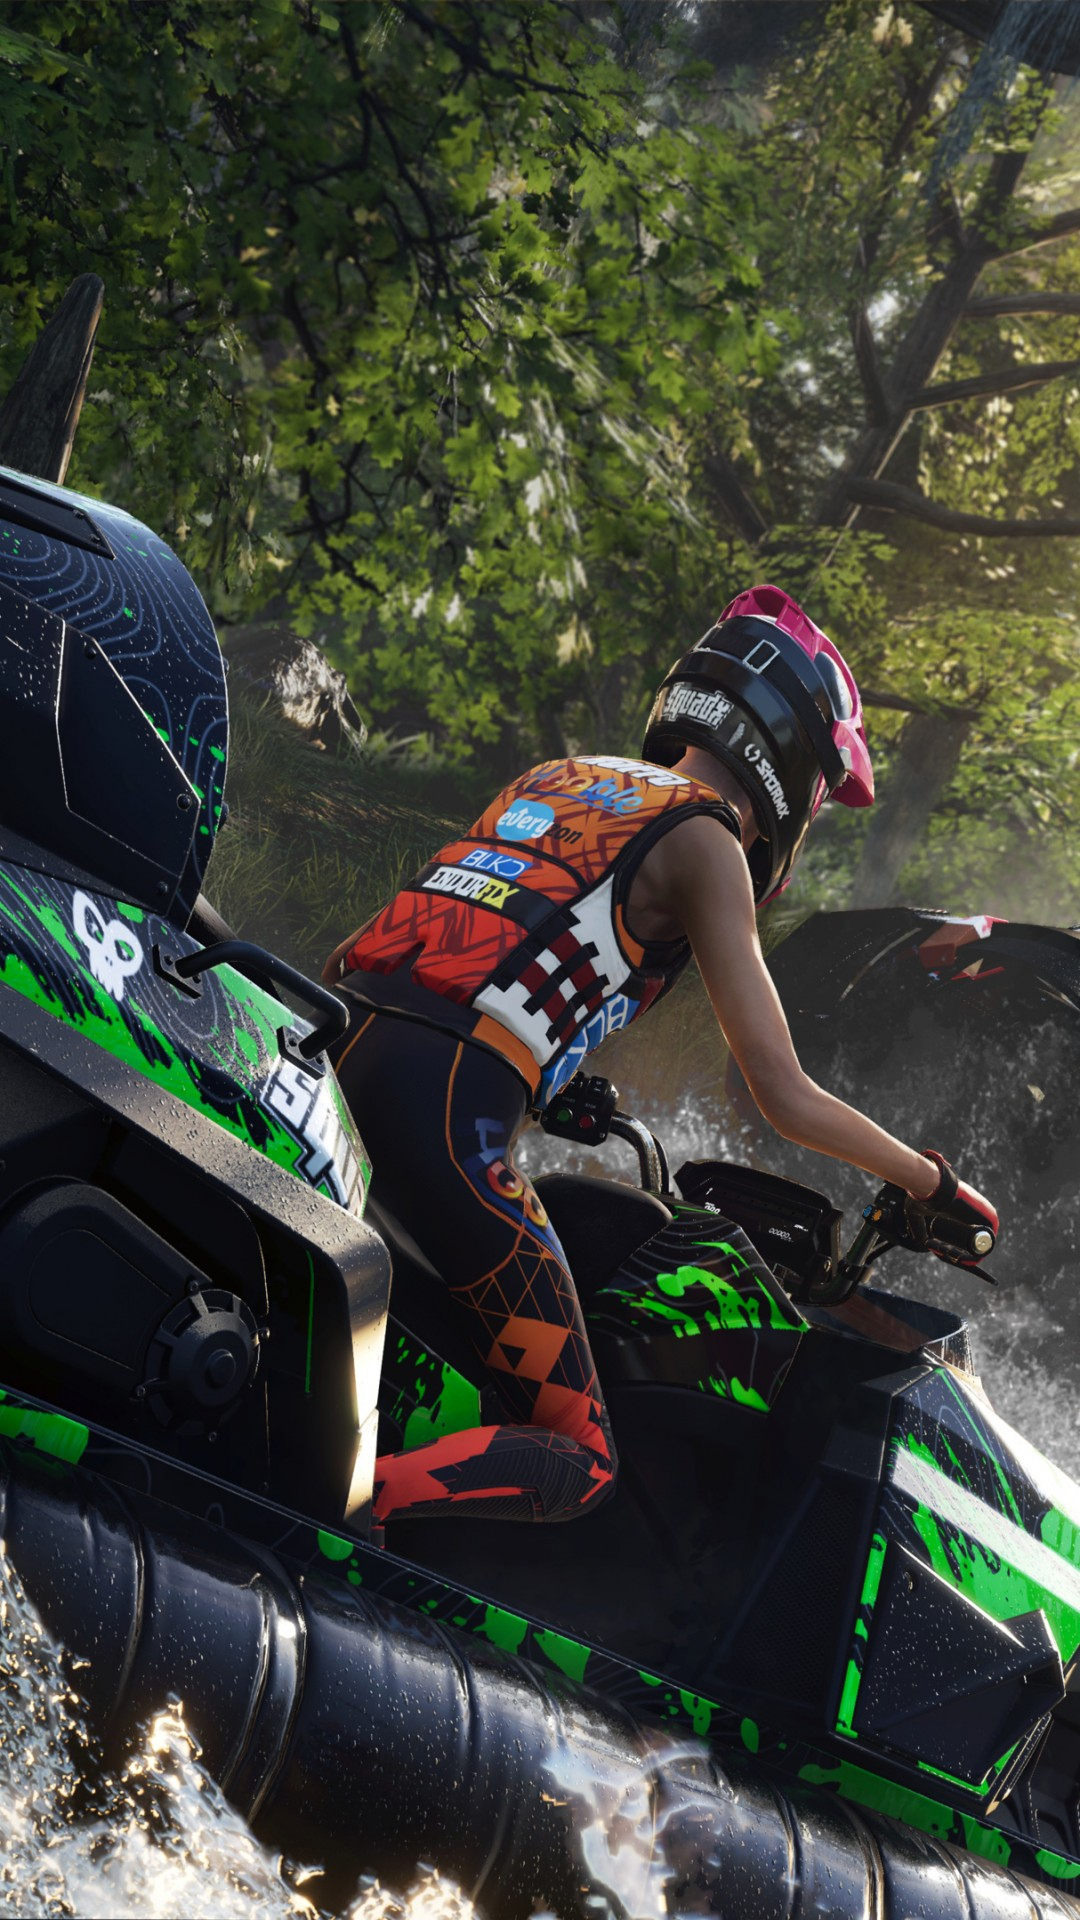 Wallpaper Gator Rush The Crew 2 Gamescom 2018